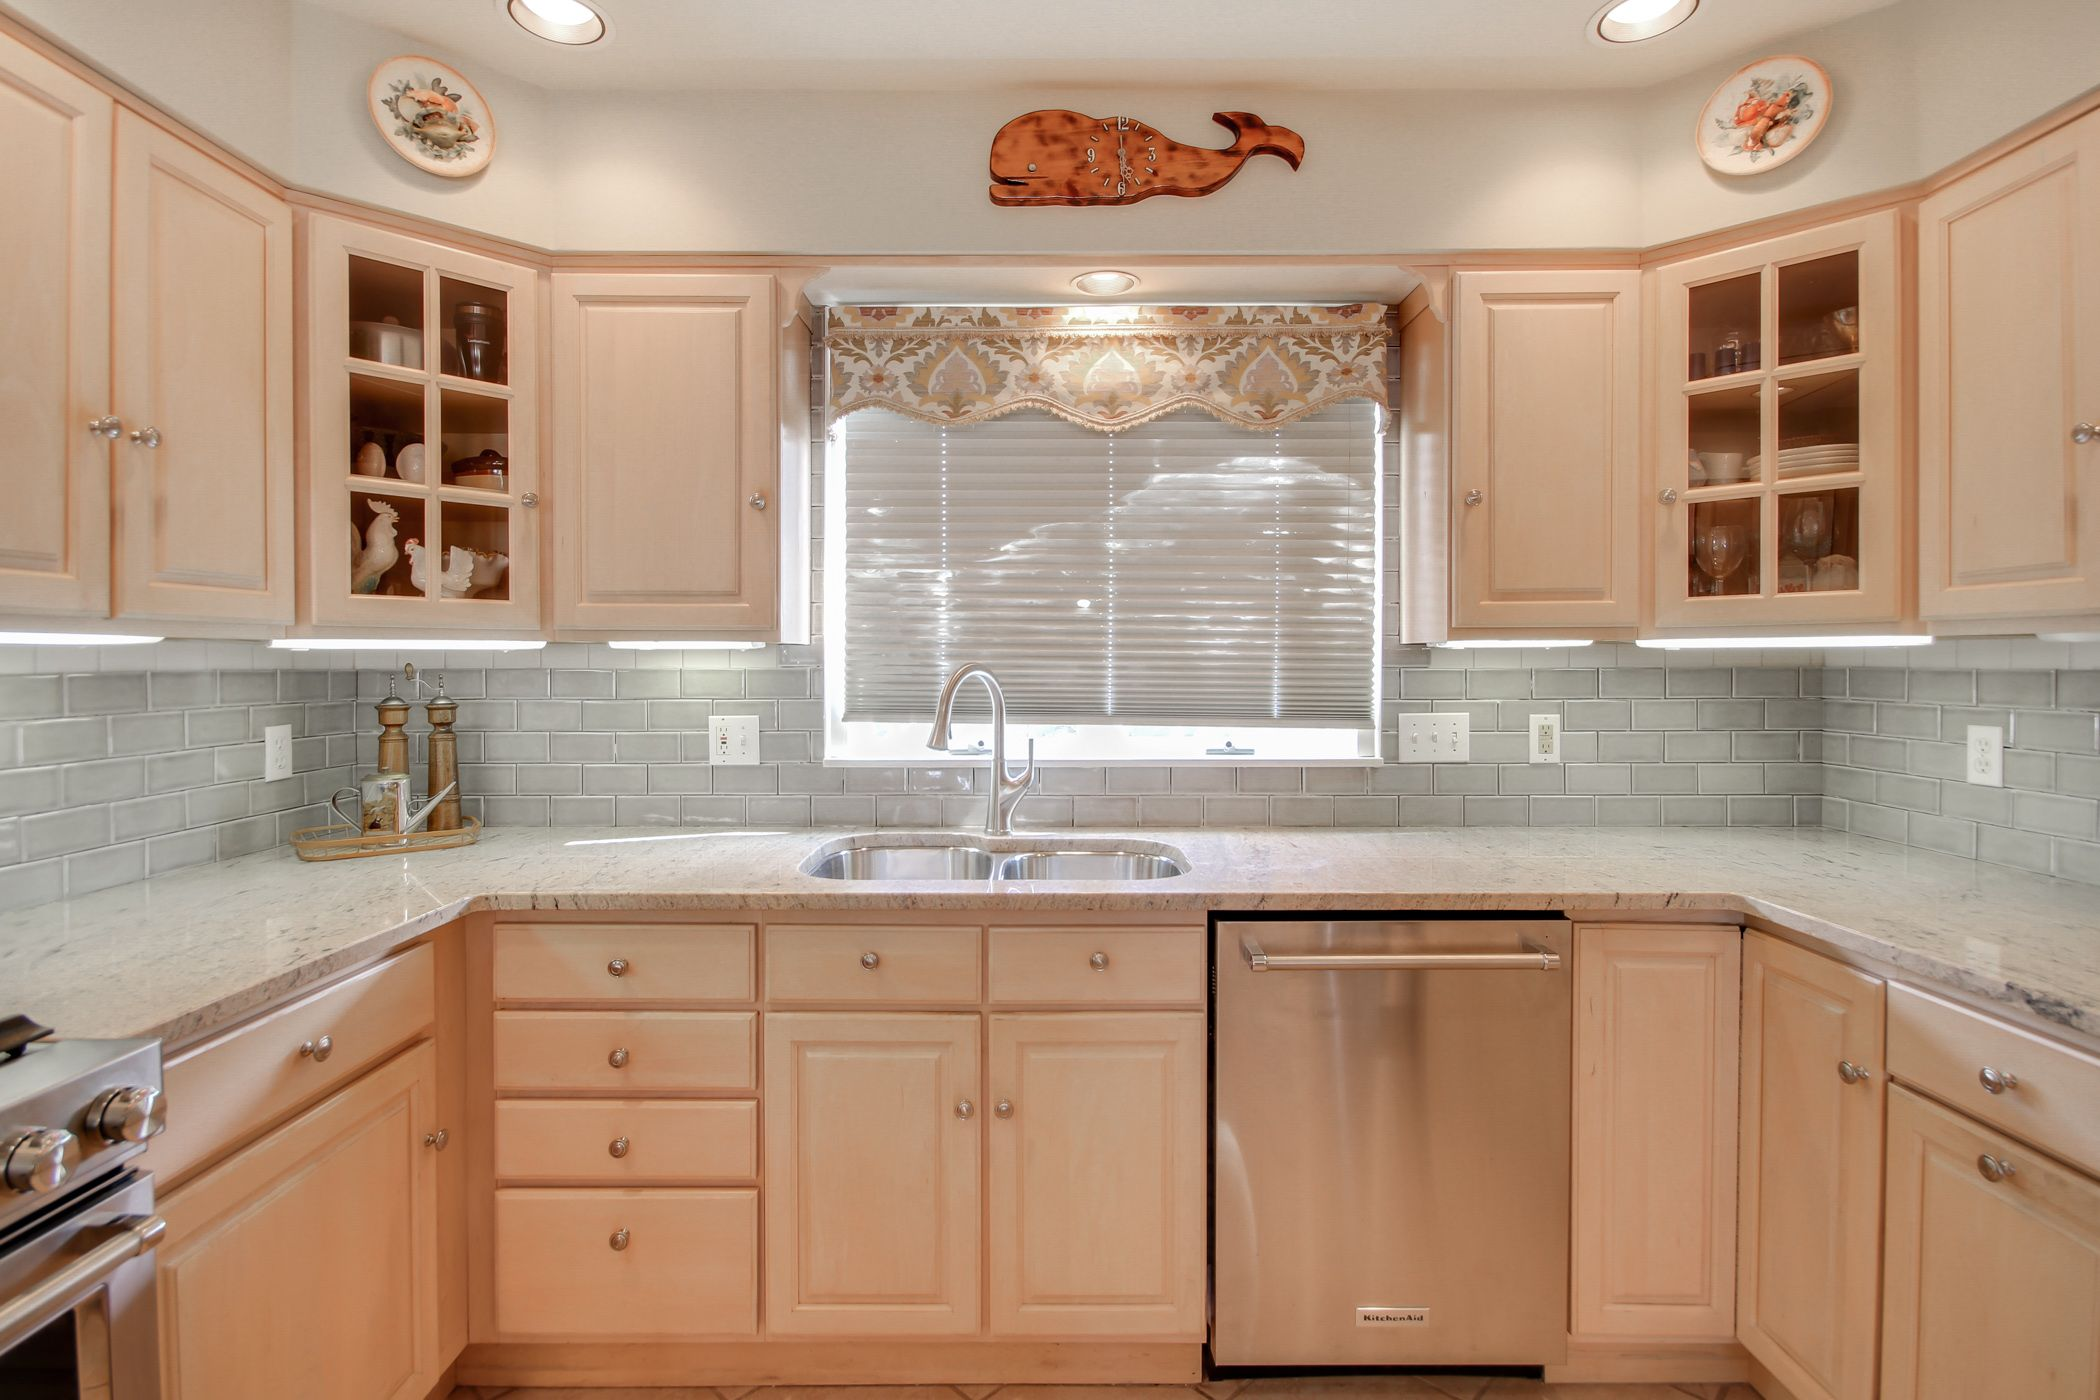 Beach house kitchen with Crema Astoria granite countertops and a ...